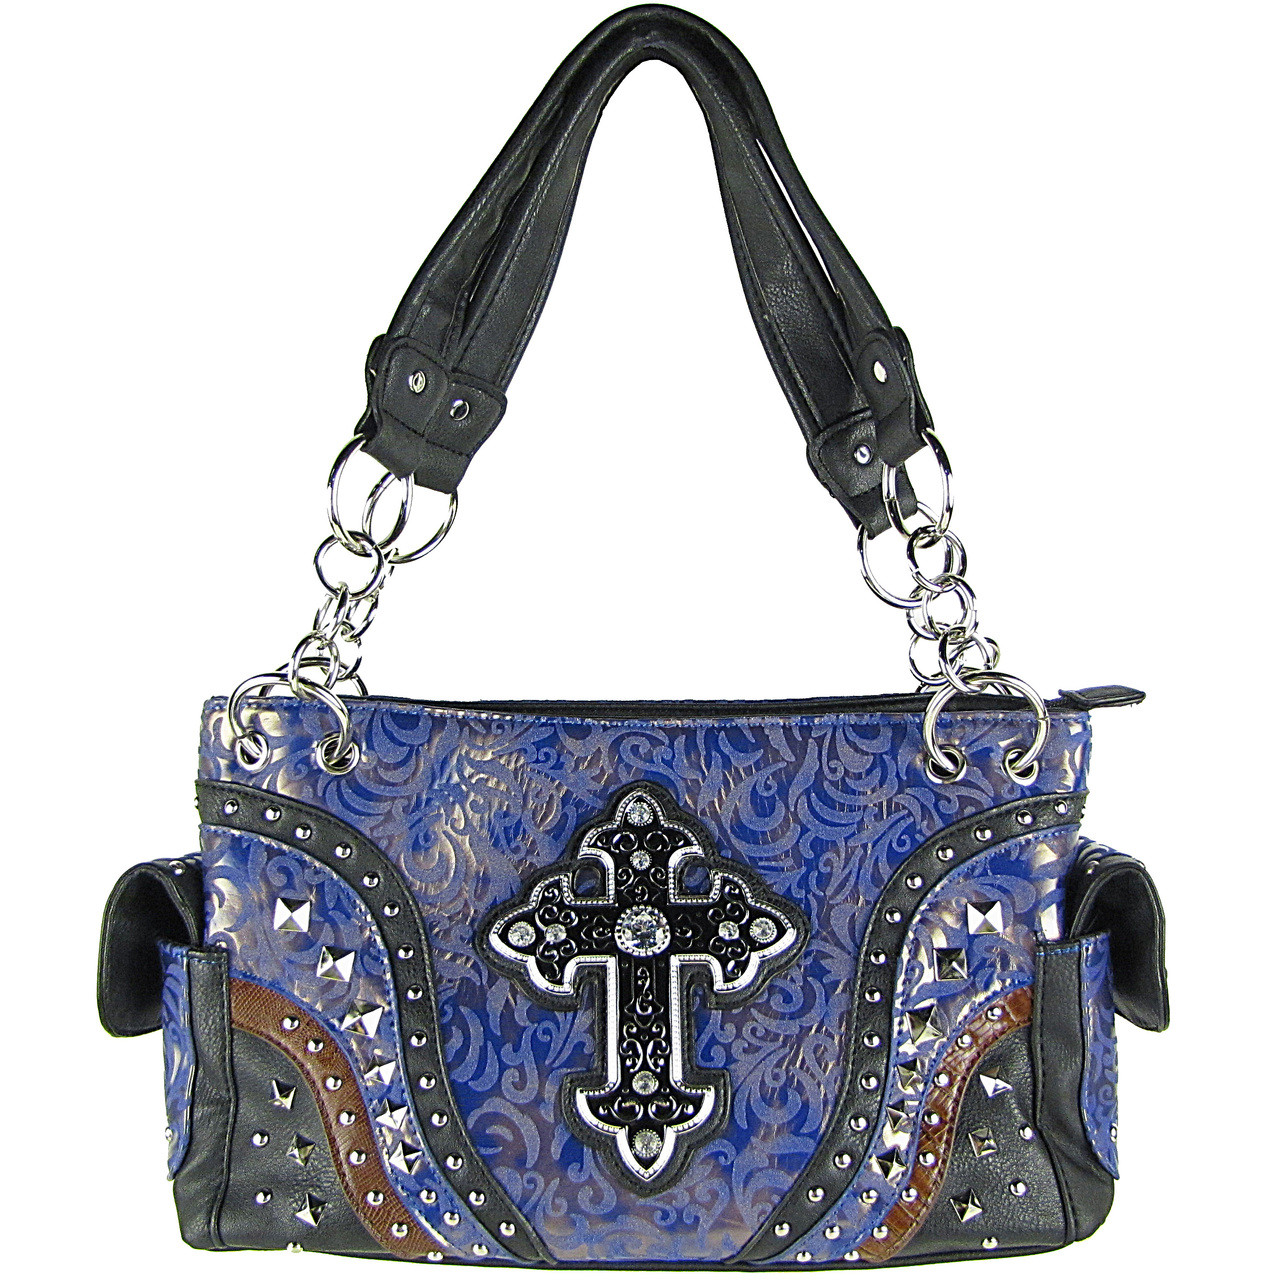 PURPLE METALLIC PAISLEY STUDDED RHINESTONE CROSS LOOK SHOULDER HANDBAG HB1-90LCRPPL